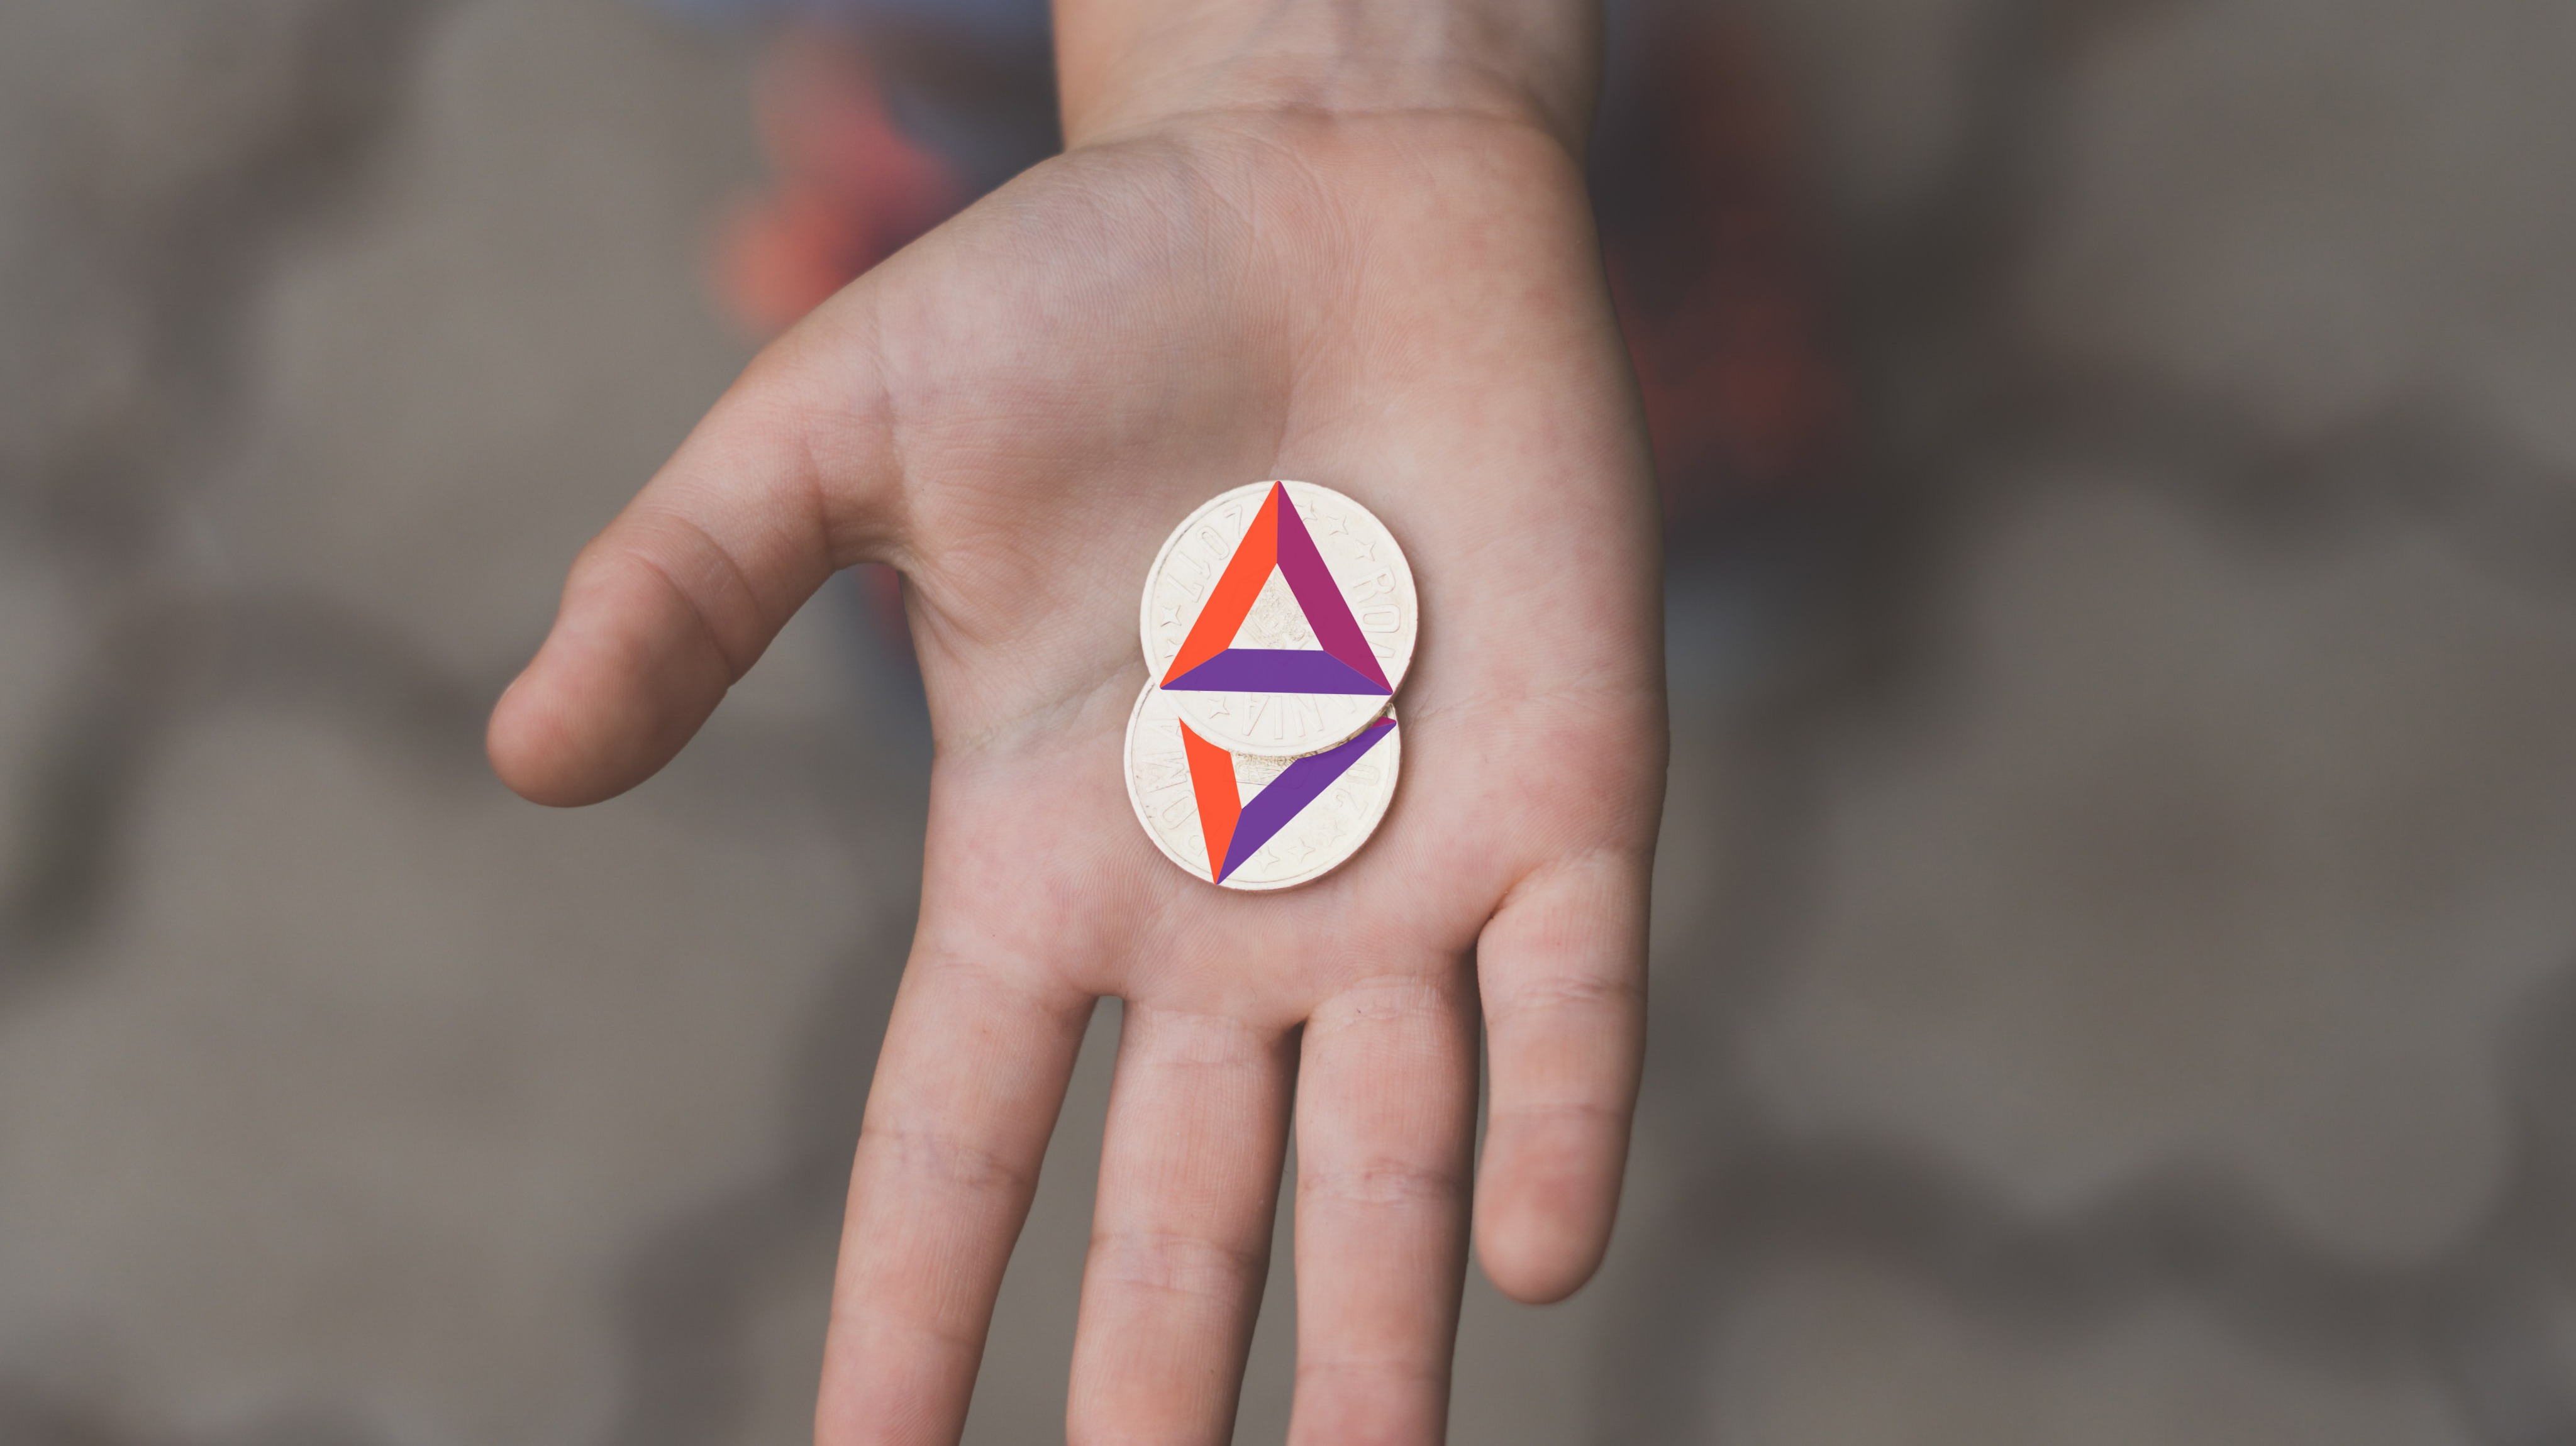 Hand offering up some coins with the BAT logo on them.